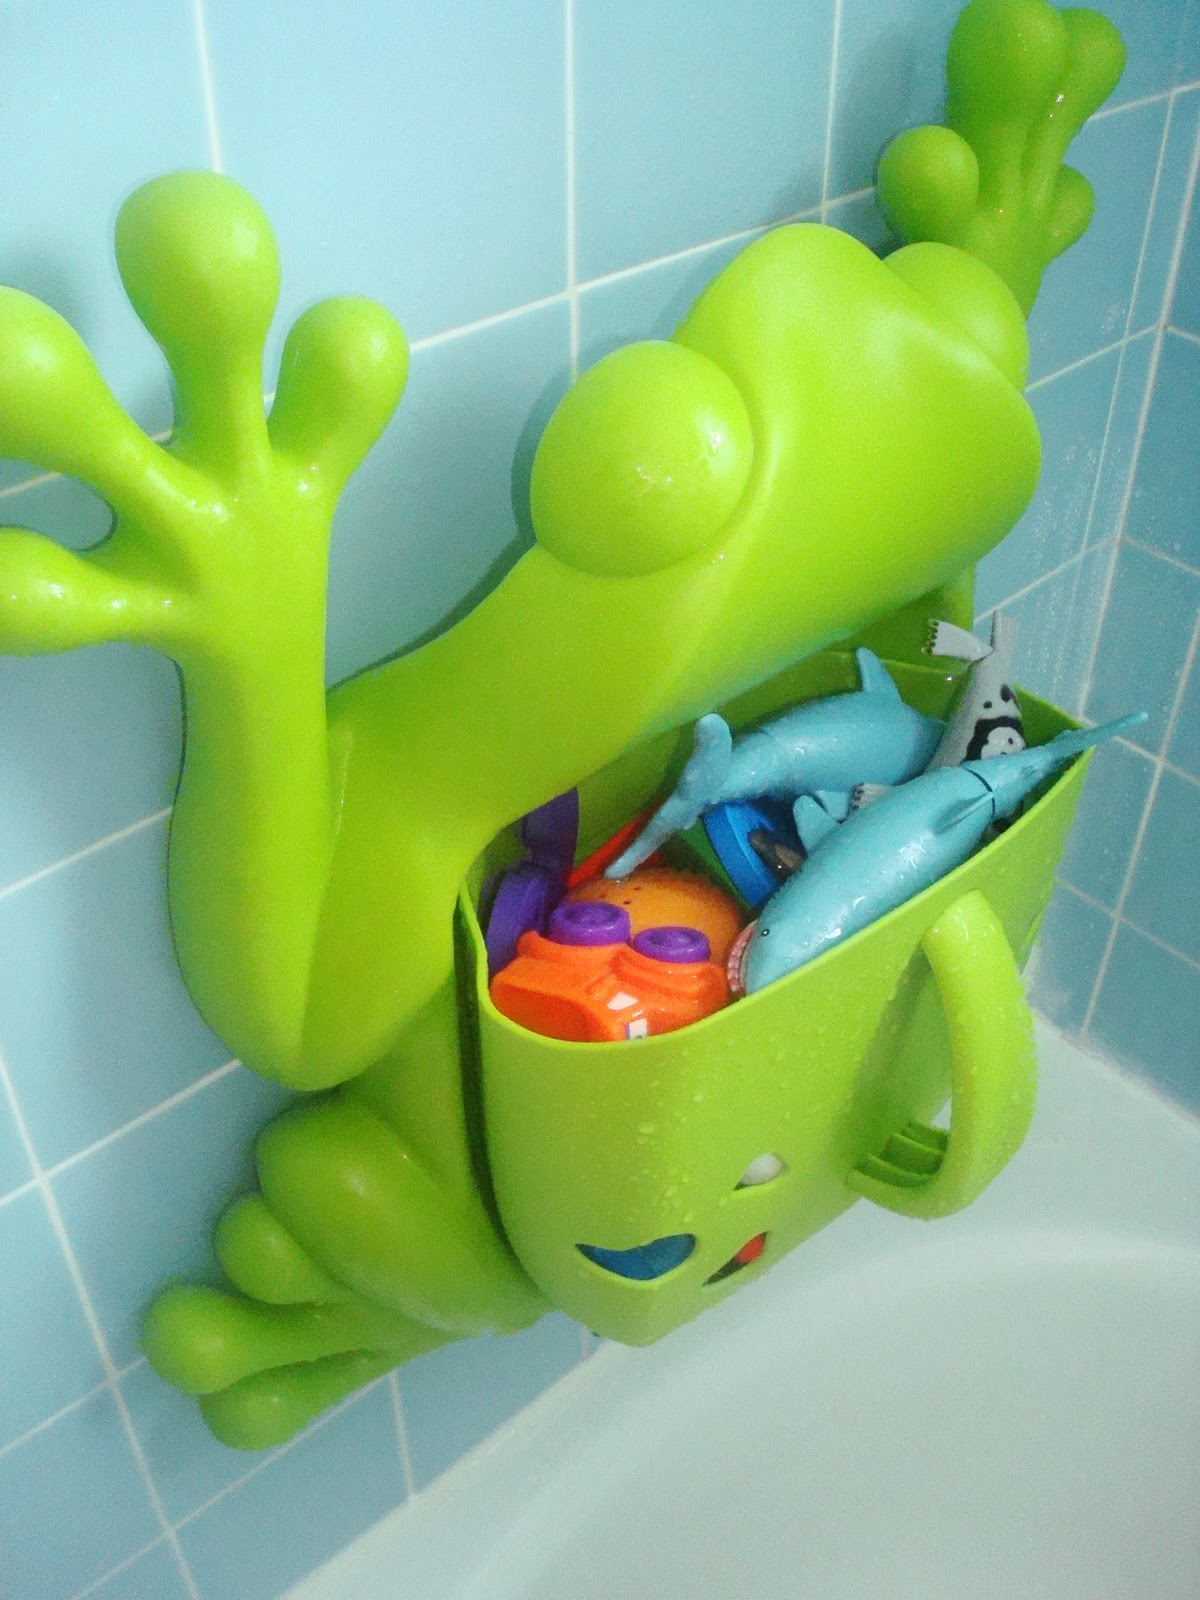 Frog Bathroom Accessories Preventing Skin Irritations, Allergies And Odor)